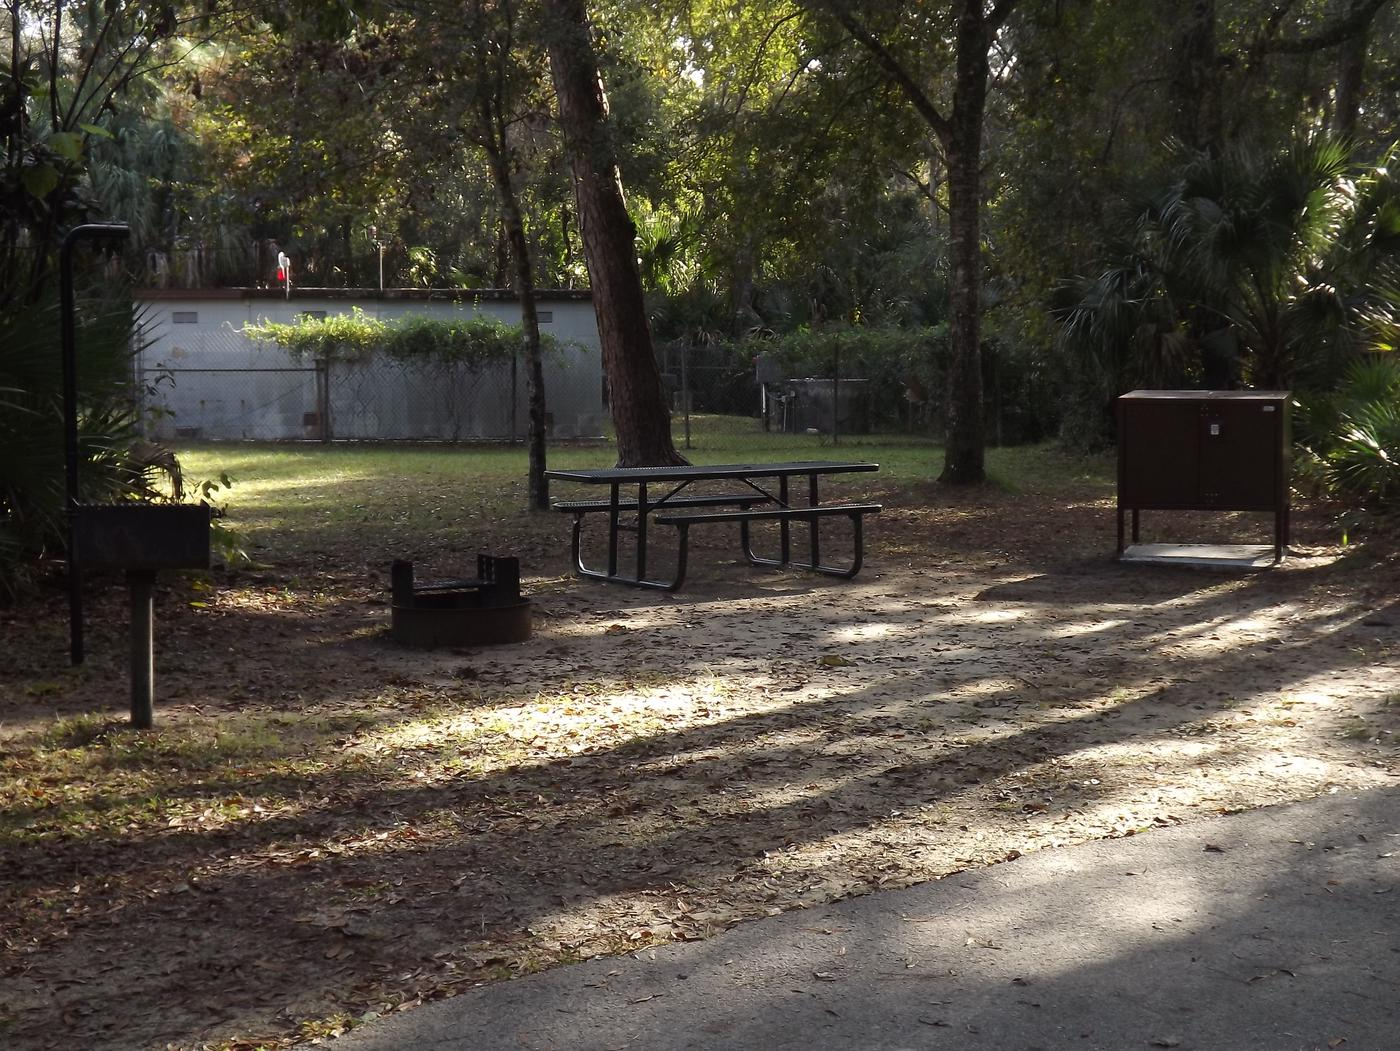 Juniper Springs Recreation Area site #13 tropical setting with picnic area and camping space.